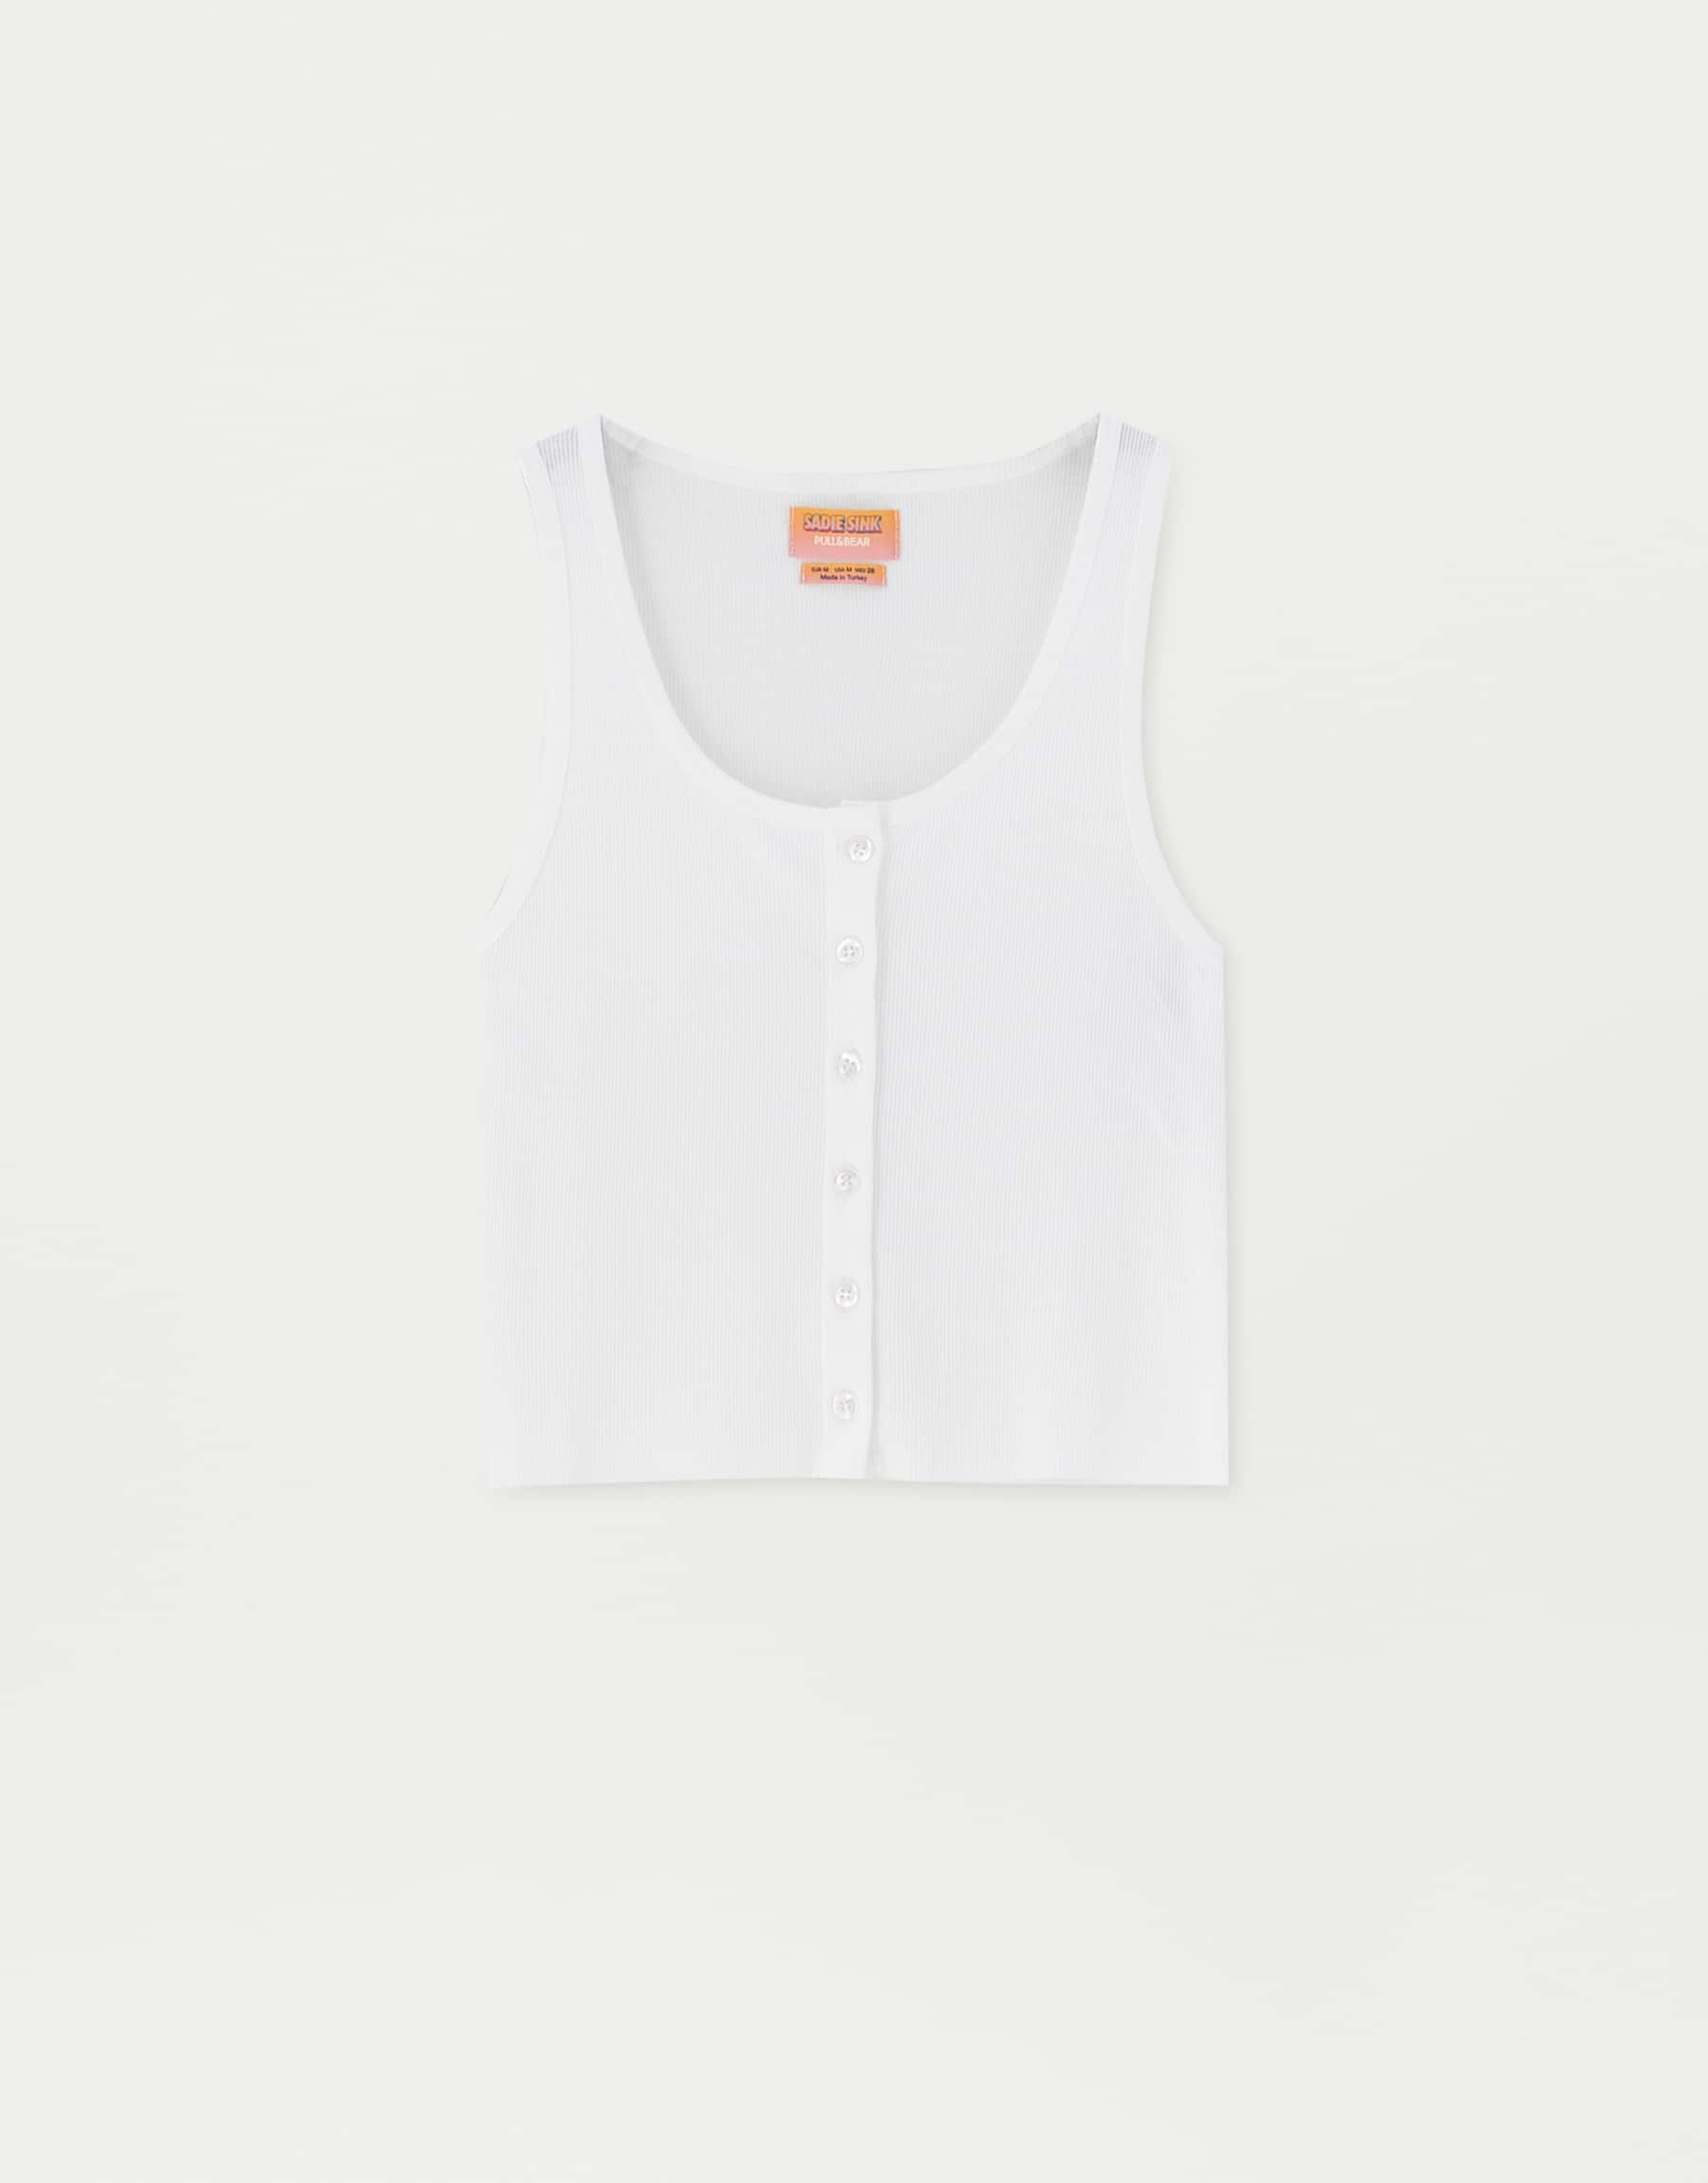 Sadie Sink Vest Top, $19.90